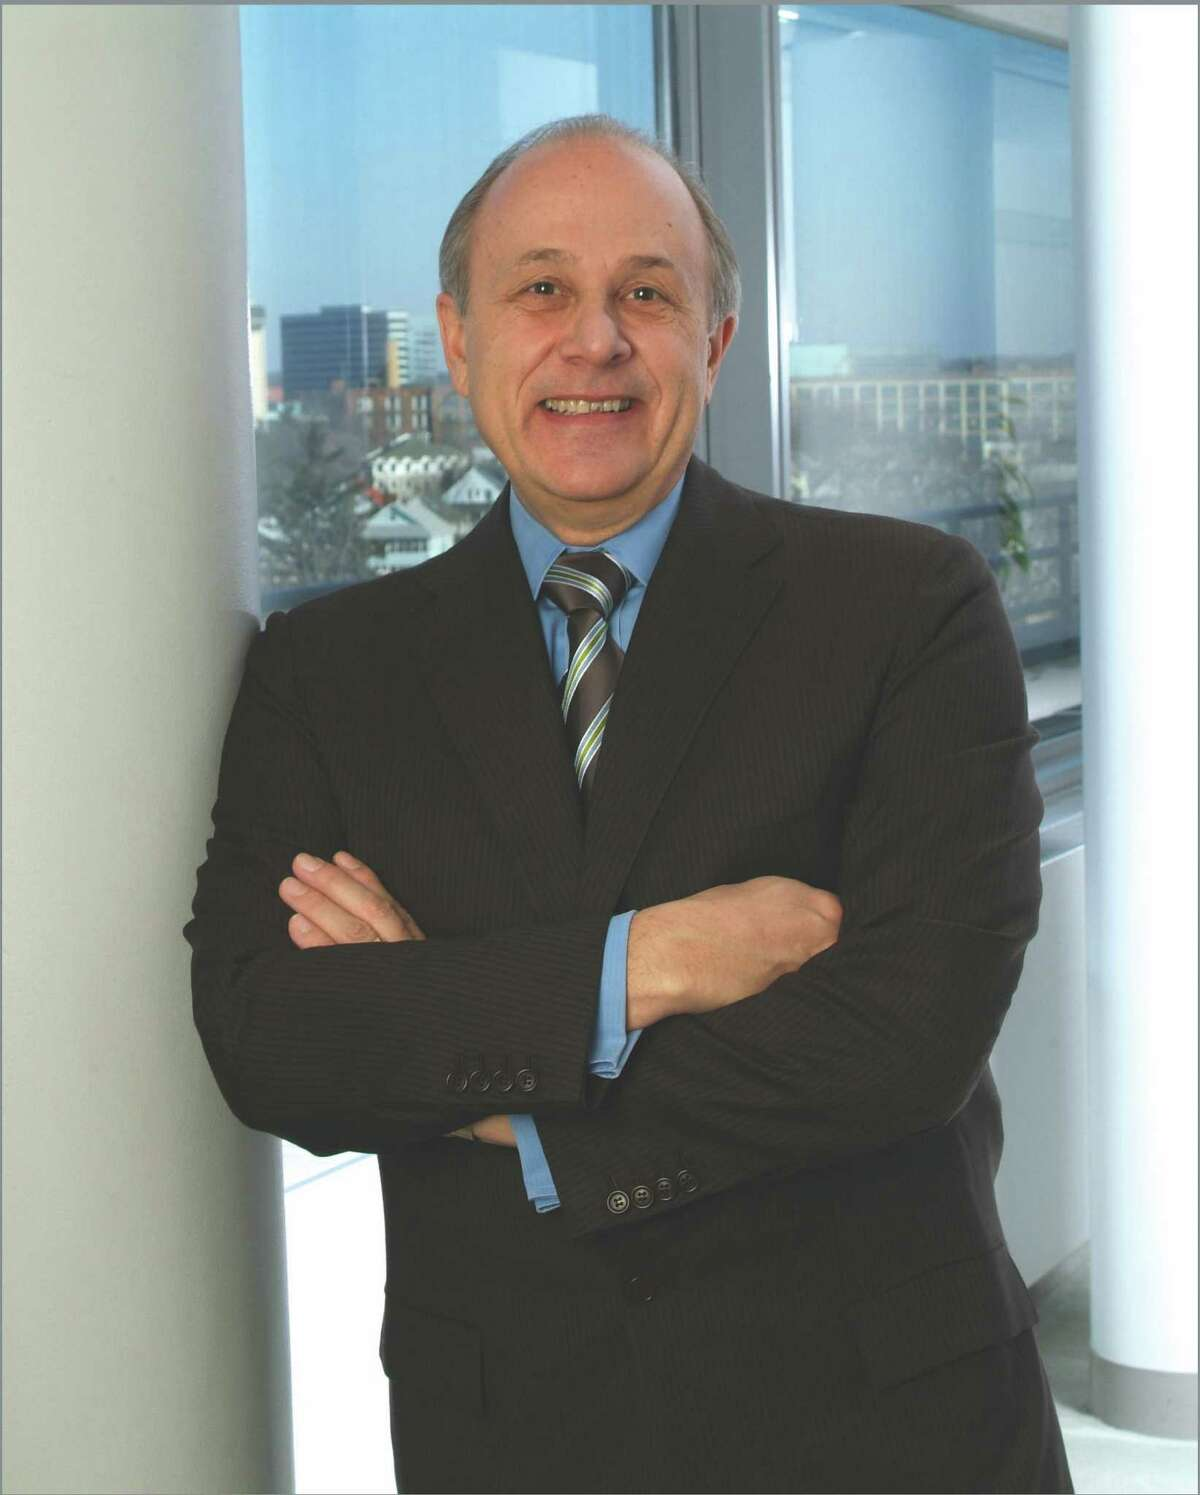 Murray D. Martin, who is retiring as Pitney Bowes' chairman, president and CEO.